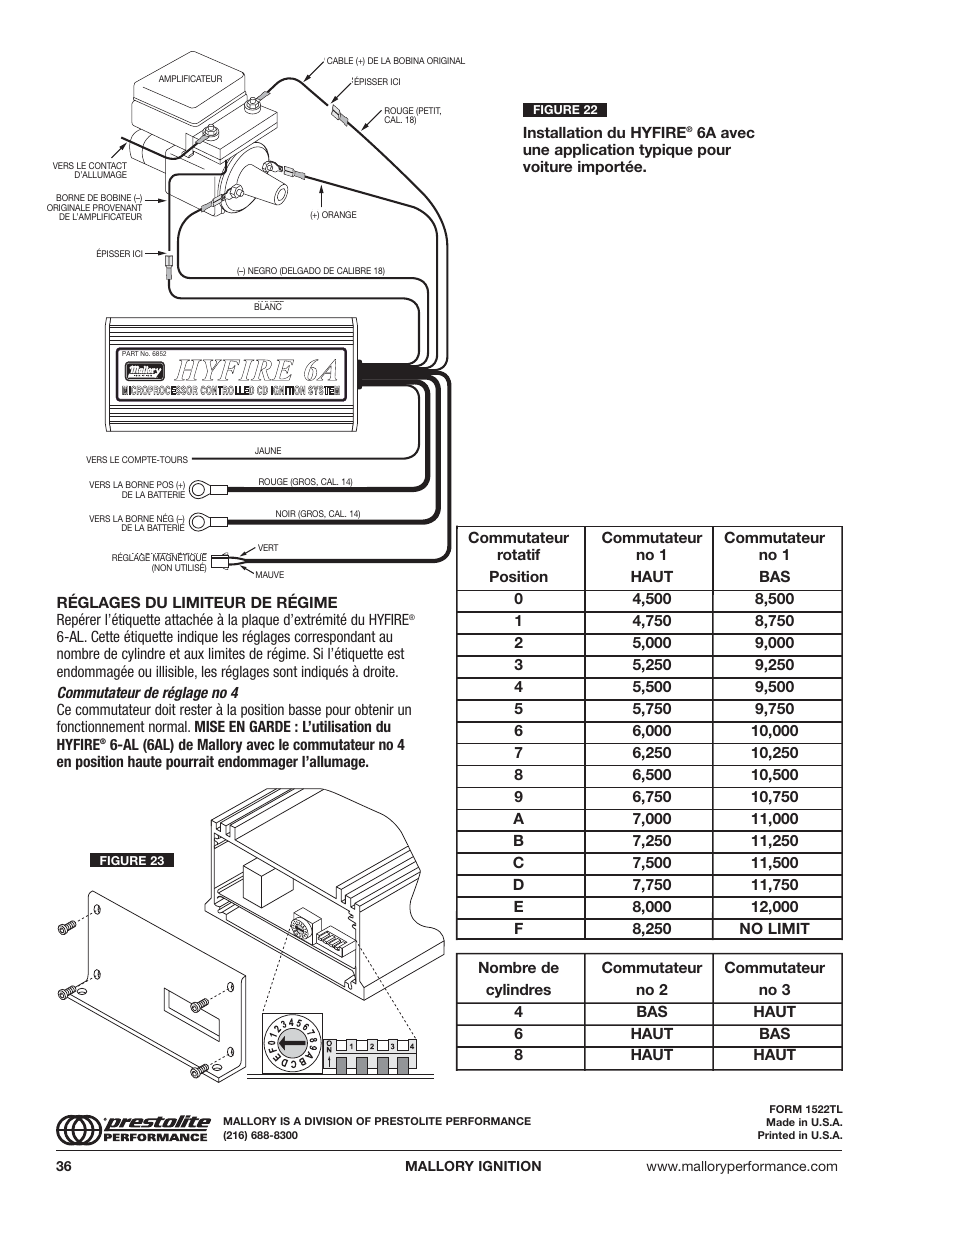 Aiphone gt 1c wiring diagram tektone wiring diagrams free wiring mallory ignition mallory hyfire 6a and 6al series electronic ignition controls 6852m6853m page36resize sciox Image collections